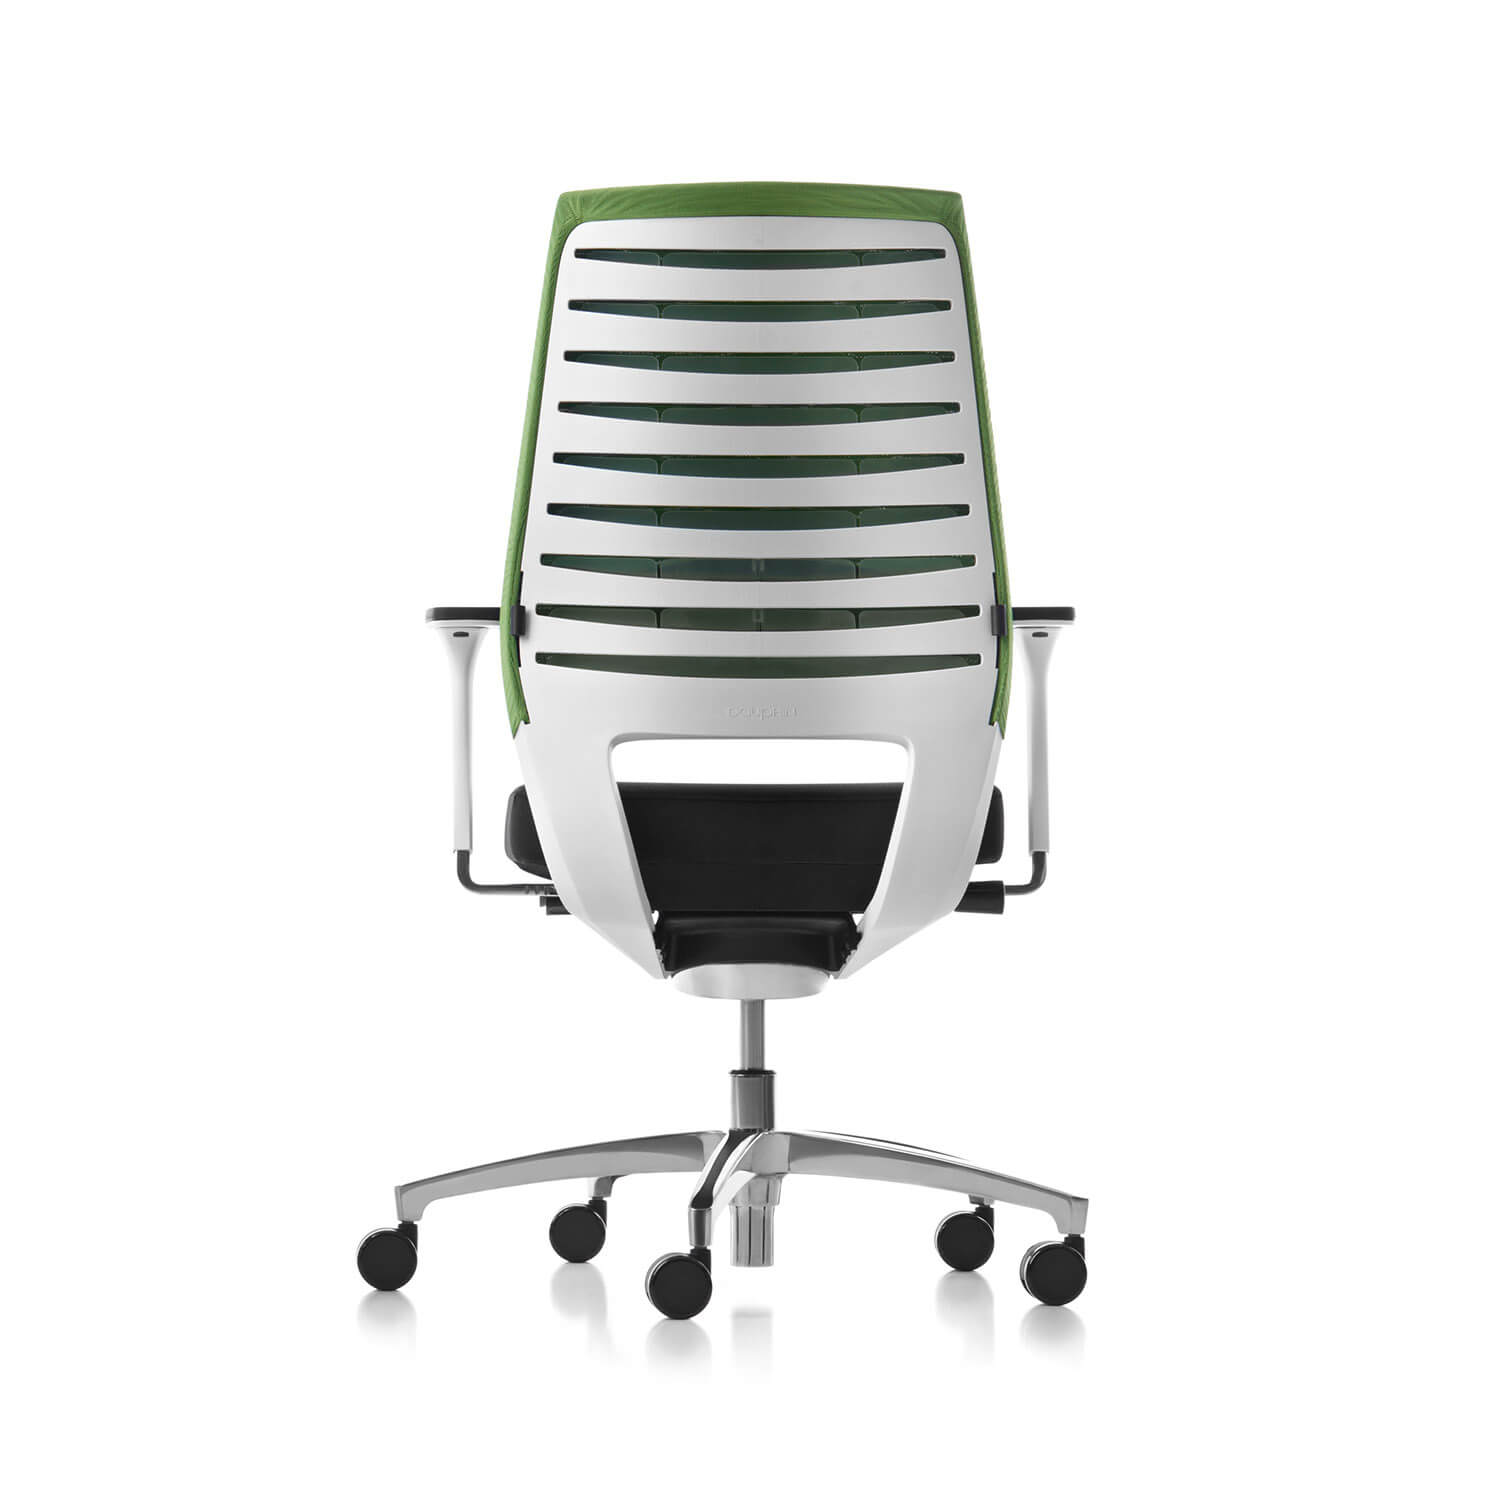 X-Code_Office Chairs4